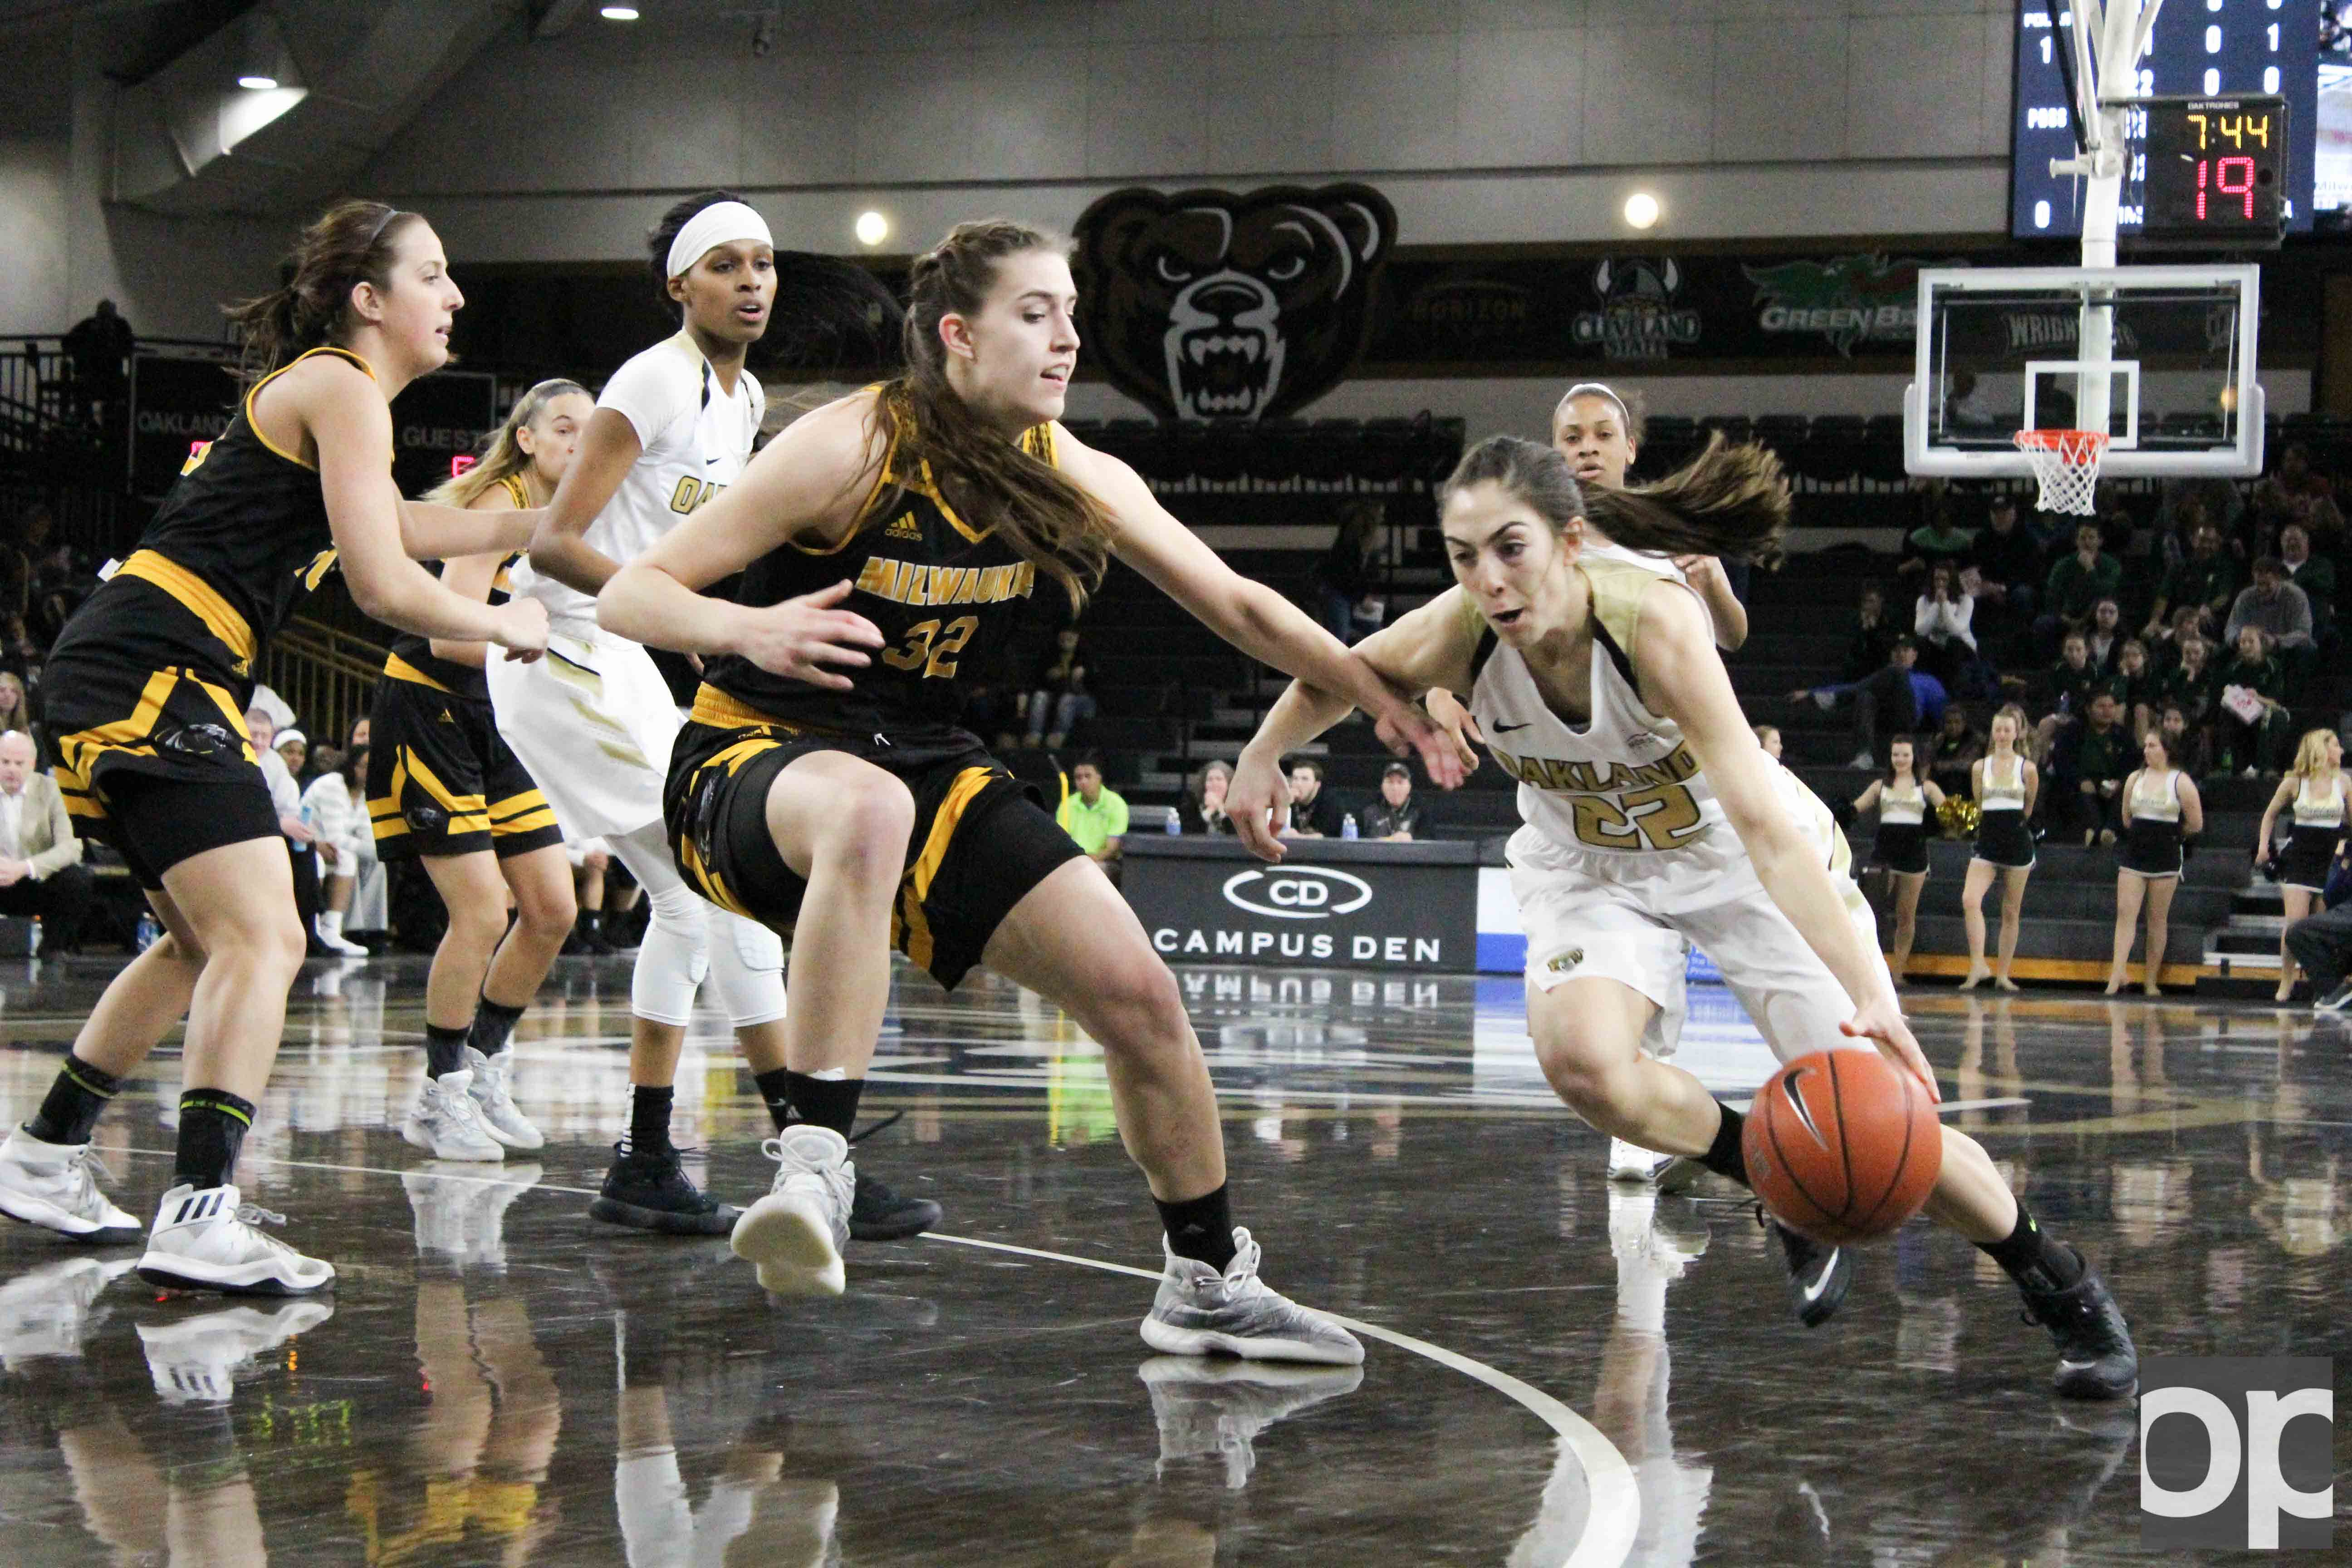 With 20 points and seven rebounds, Taylor Gleason led the Golden Grizzlies to its third consecutive win at home on Saturday, Feb. 4 at the O'rena.